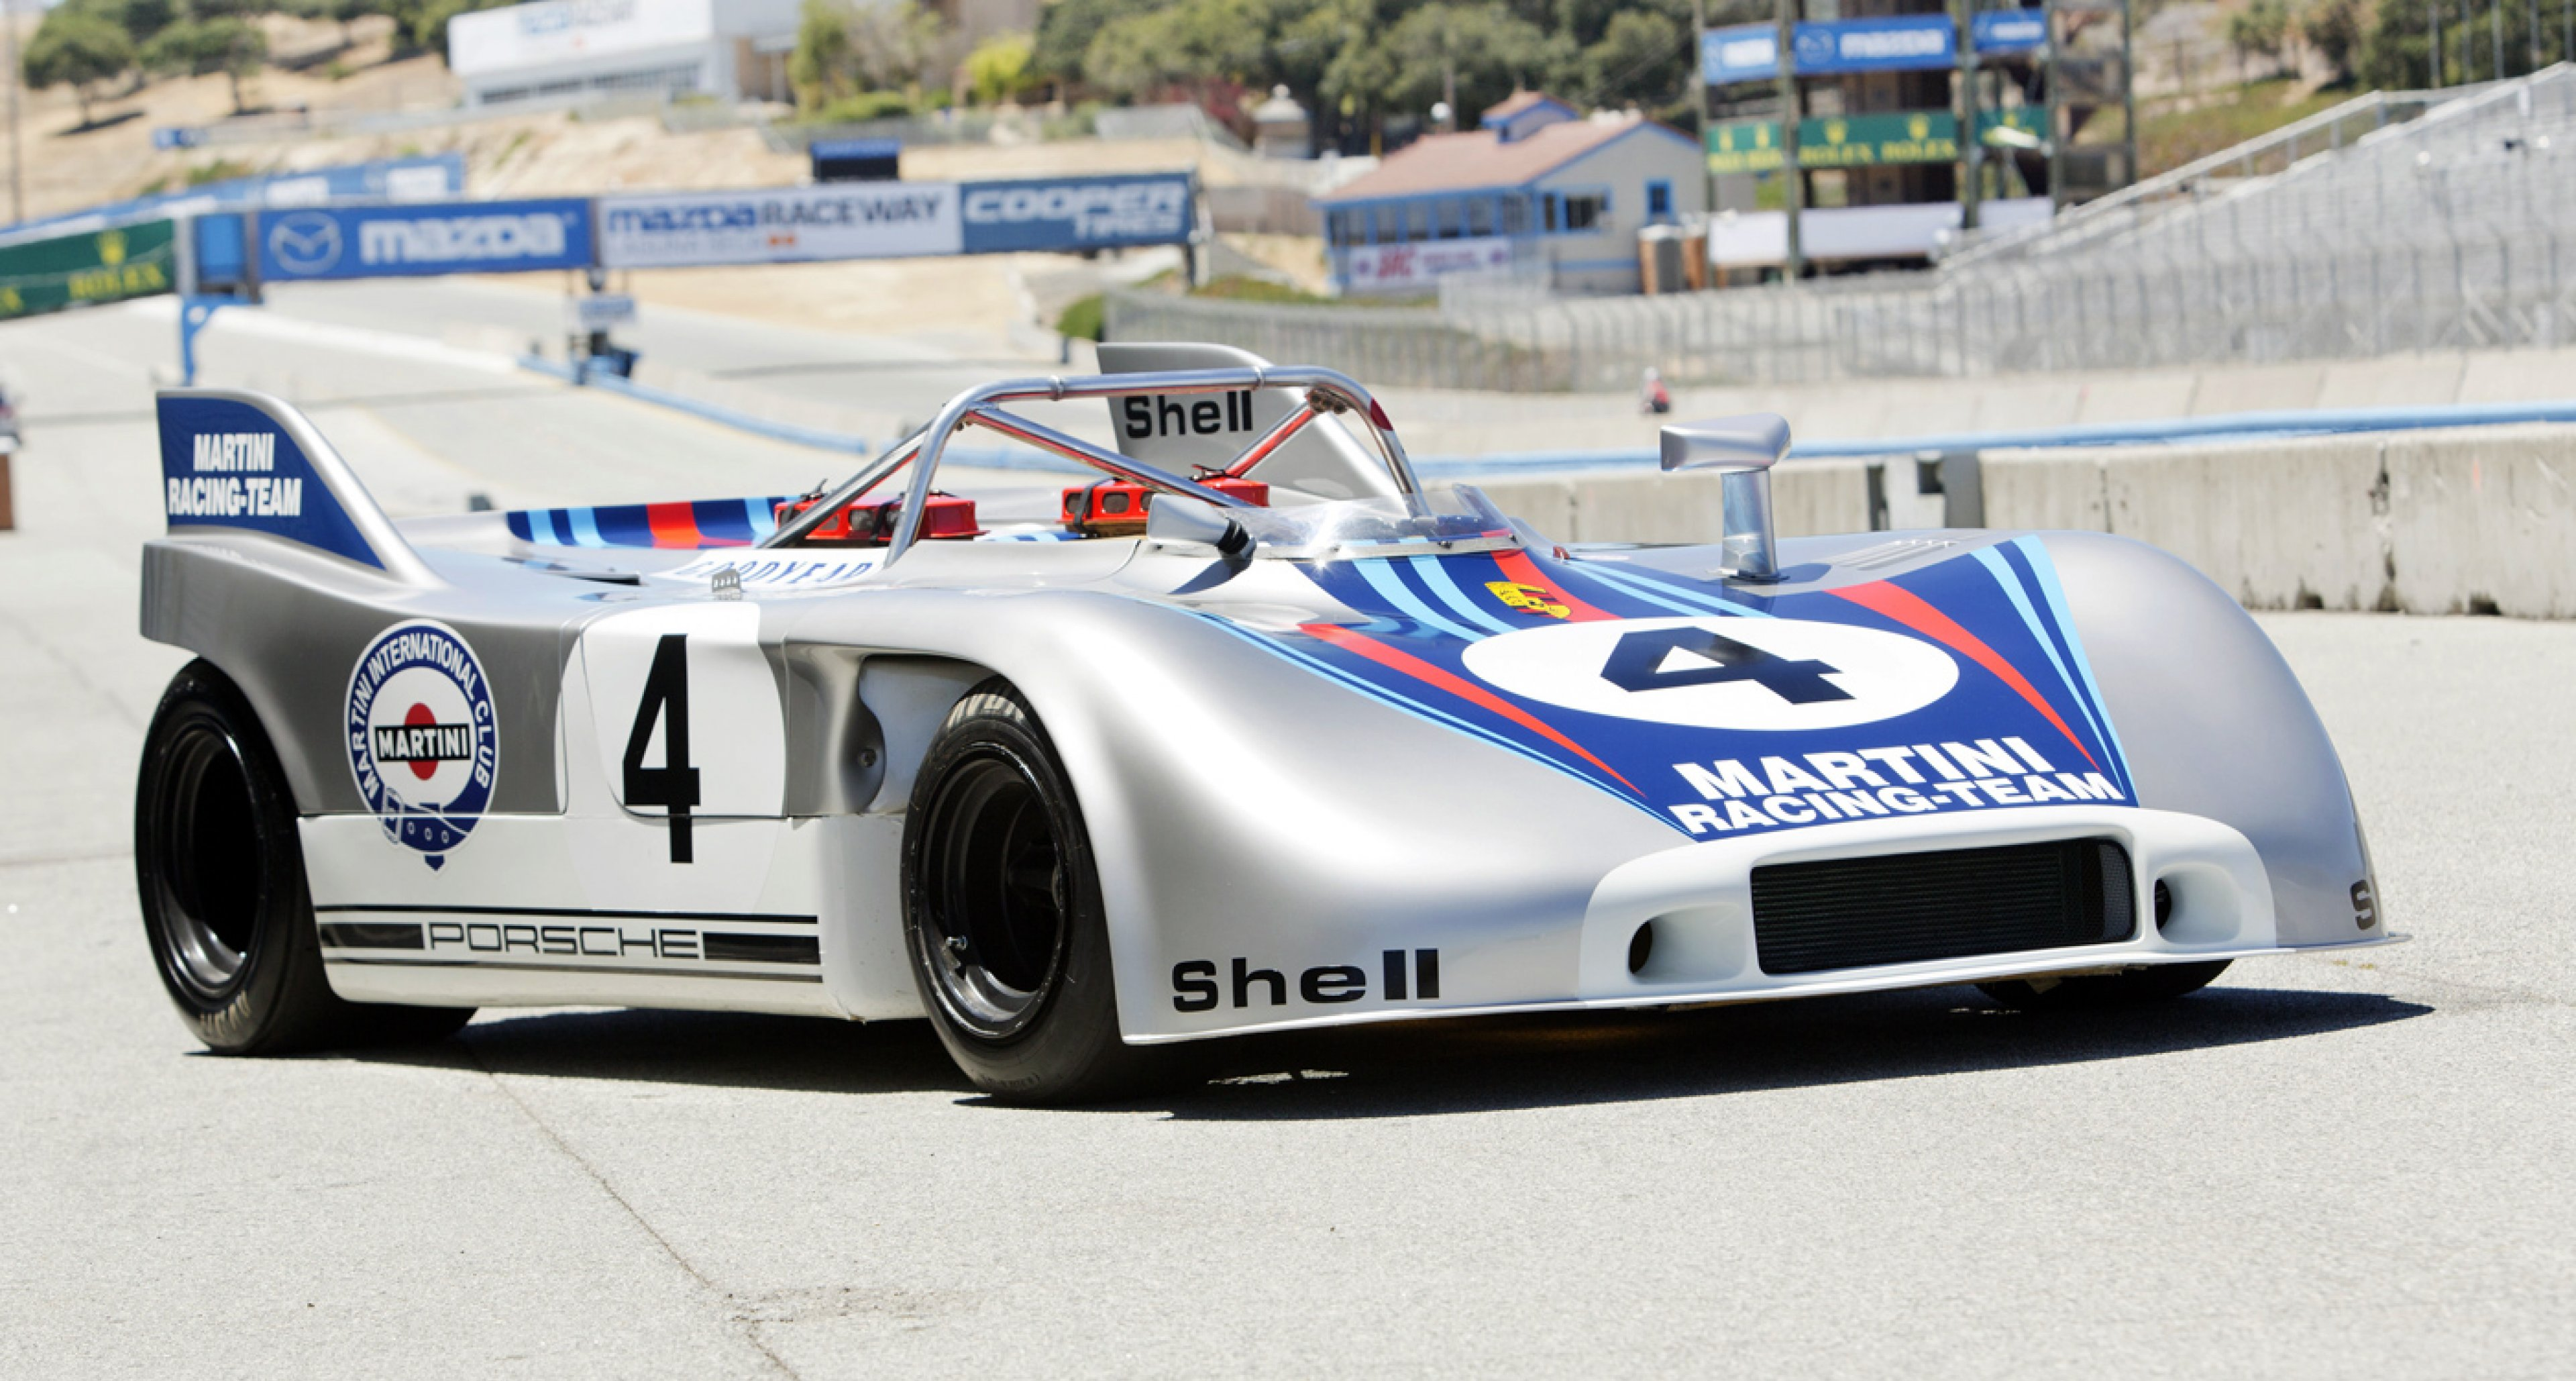 The Ex-works Weissach development and test 1970 Porsche 908/03 Spyder to be auctioned at Bonhams Quail Lodge sale